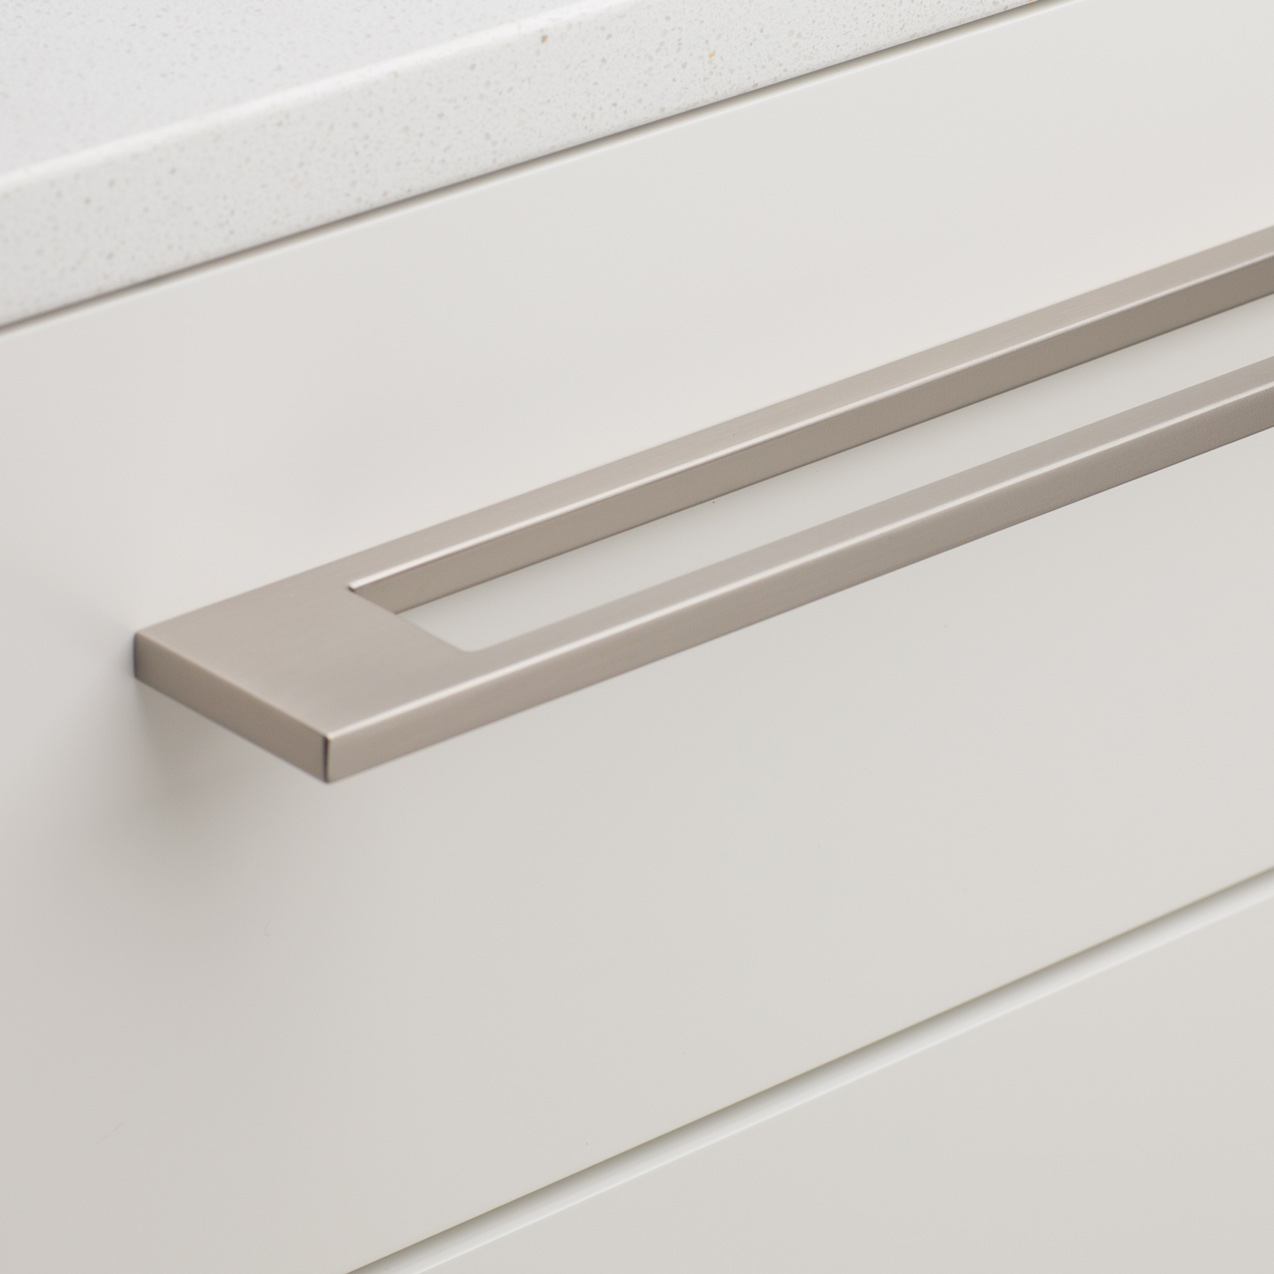 Brushed Nickel L815 Keyline Handle installation